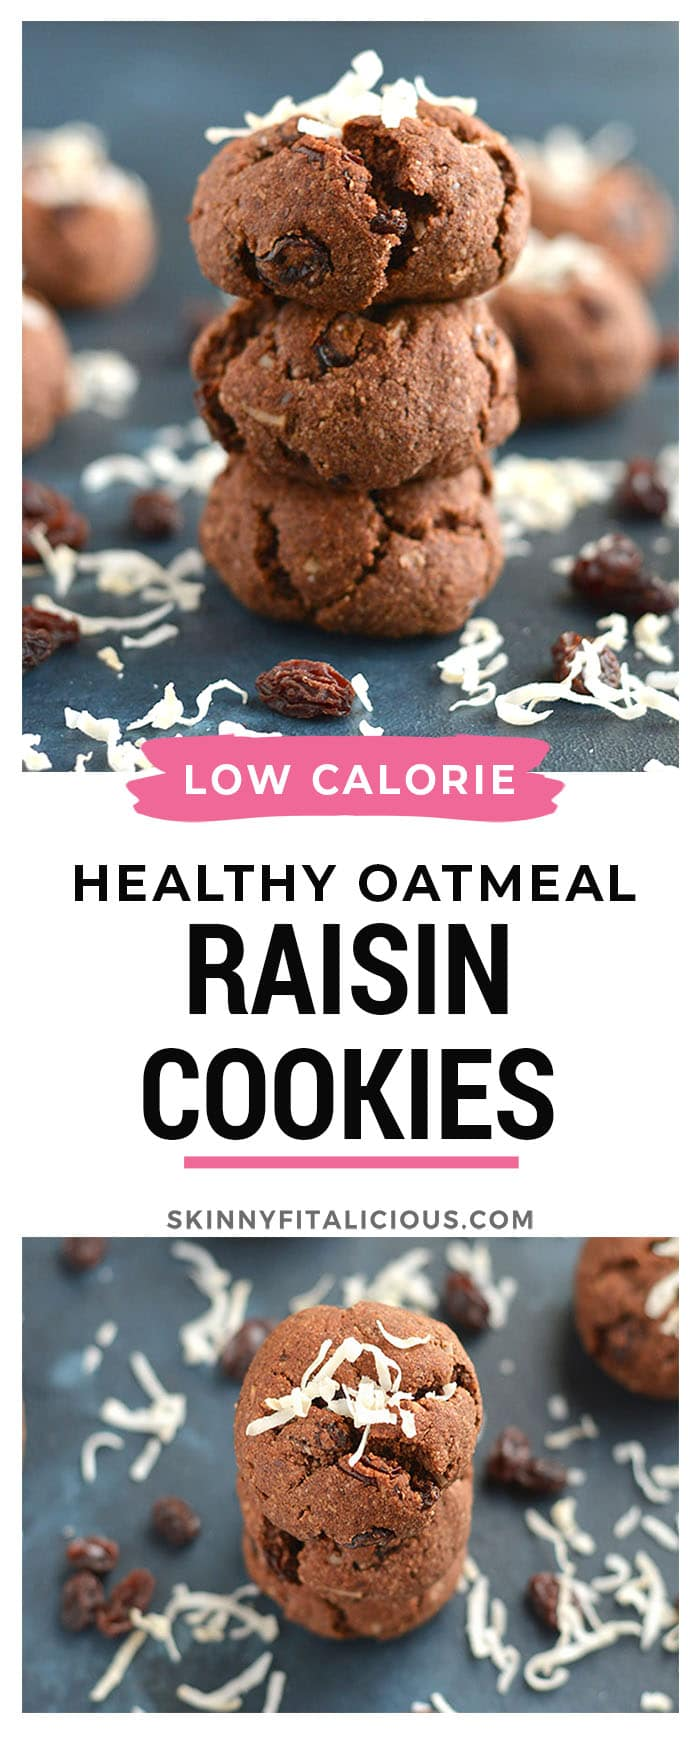 Grain Free Oatmeal Raisin Cookies! Make cookies part of a healthy snacking routine with this Paleo recipe madewith no refined sugar, oil andoatless. They taste like the real deal! Paleo + Gluten Free + Low Calorie